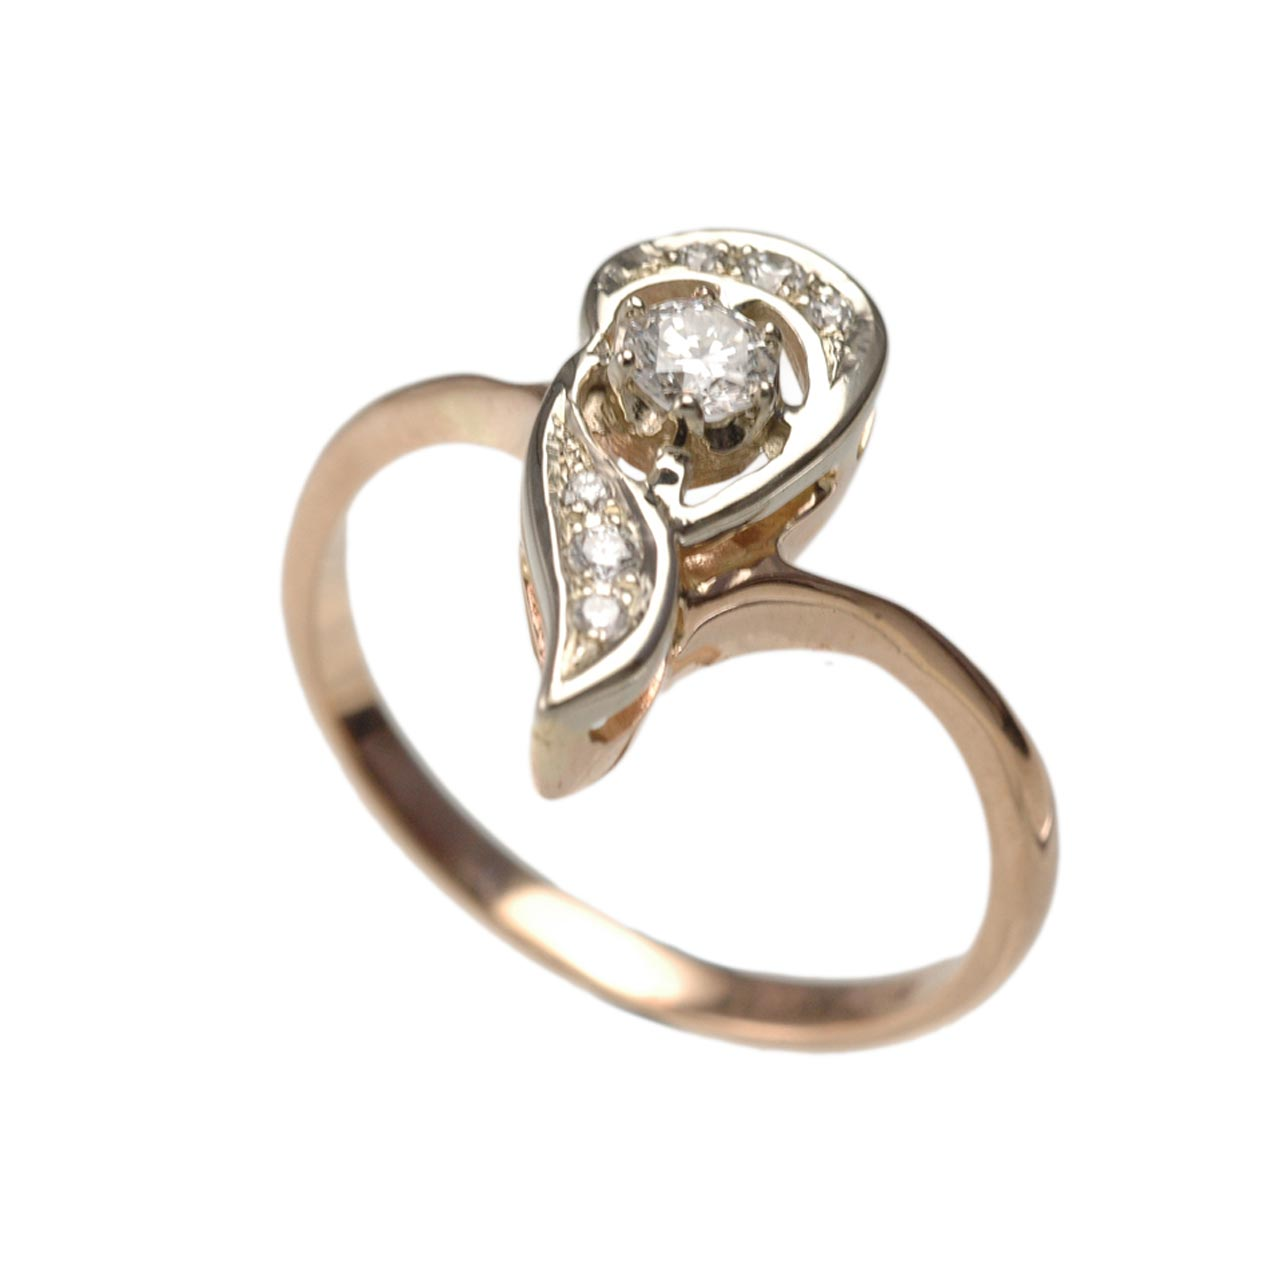 Vintage diamond ring 2